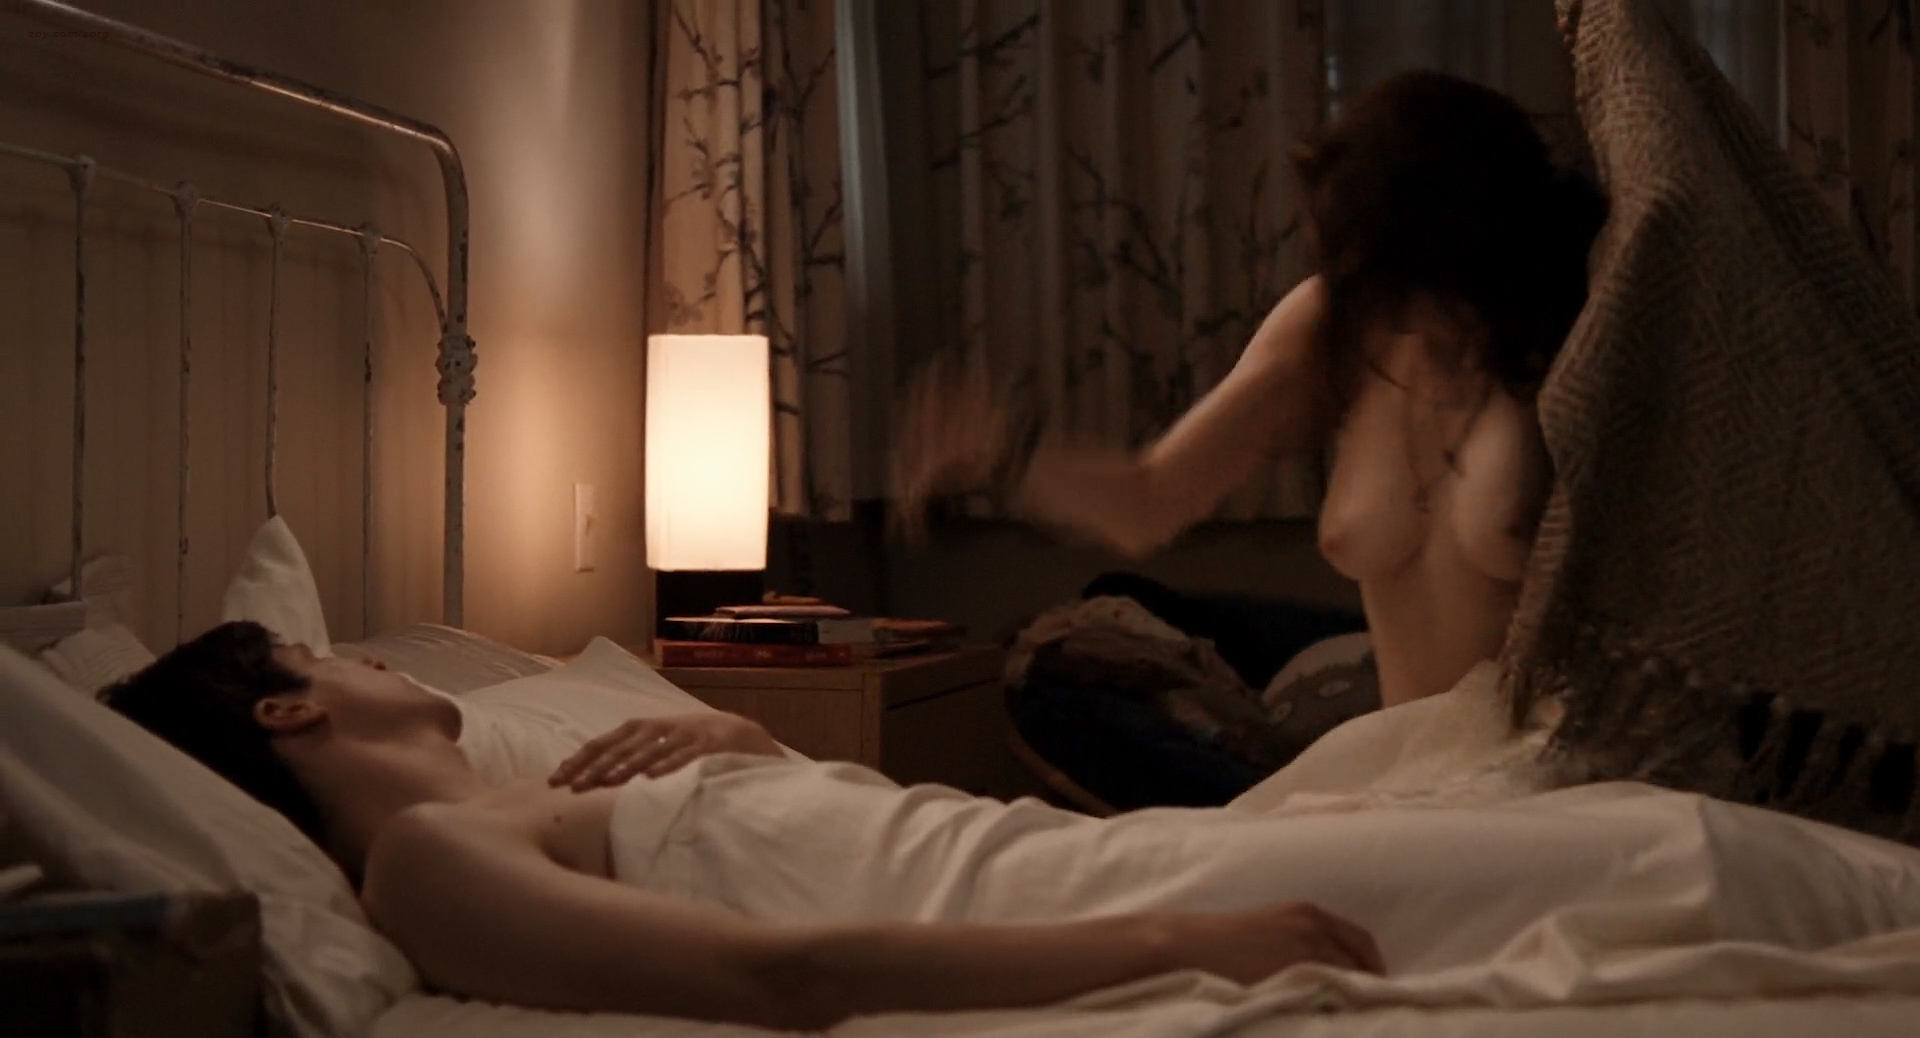 Rachel-Brosnahan-nude-topless-Louder-Than-Bombs-2015-HD-1080p-WEB-DL-5.jpg